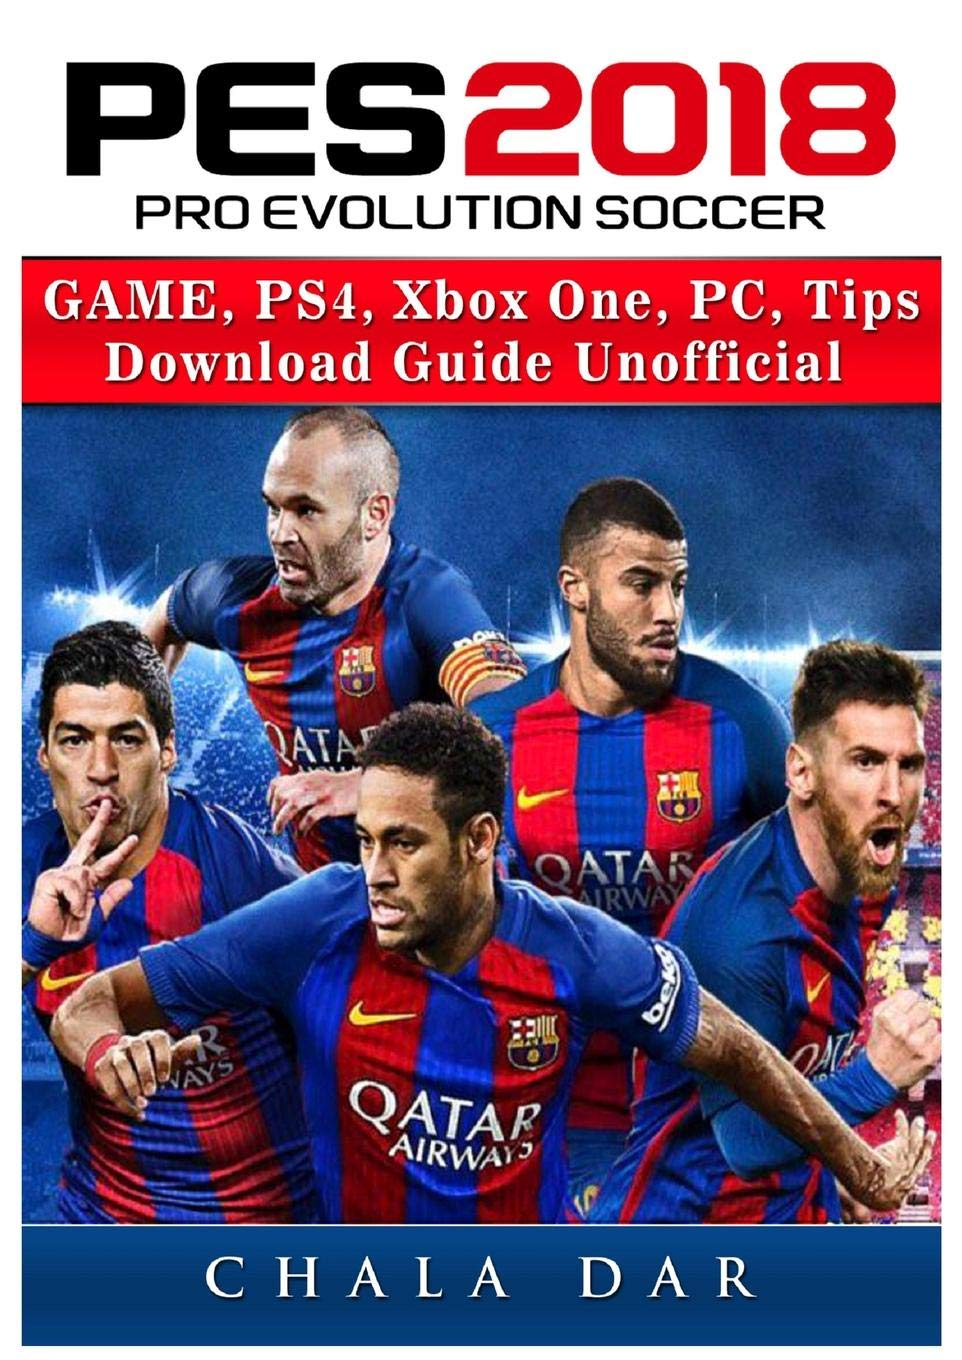 Pro Evolution Soccer 2018 Game, Ps4, Xbox One, Pc, Tips